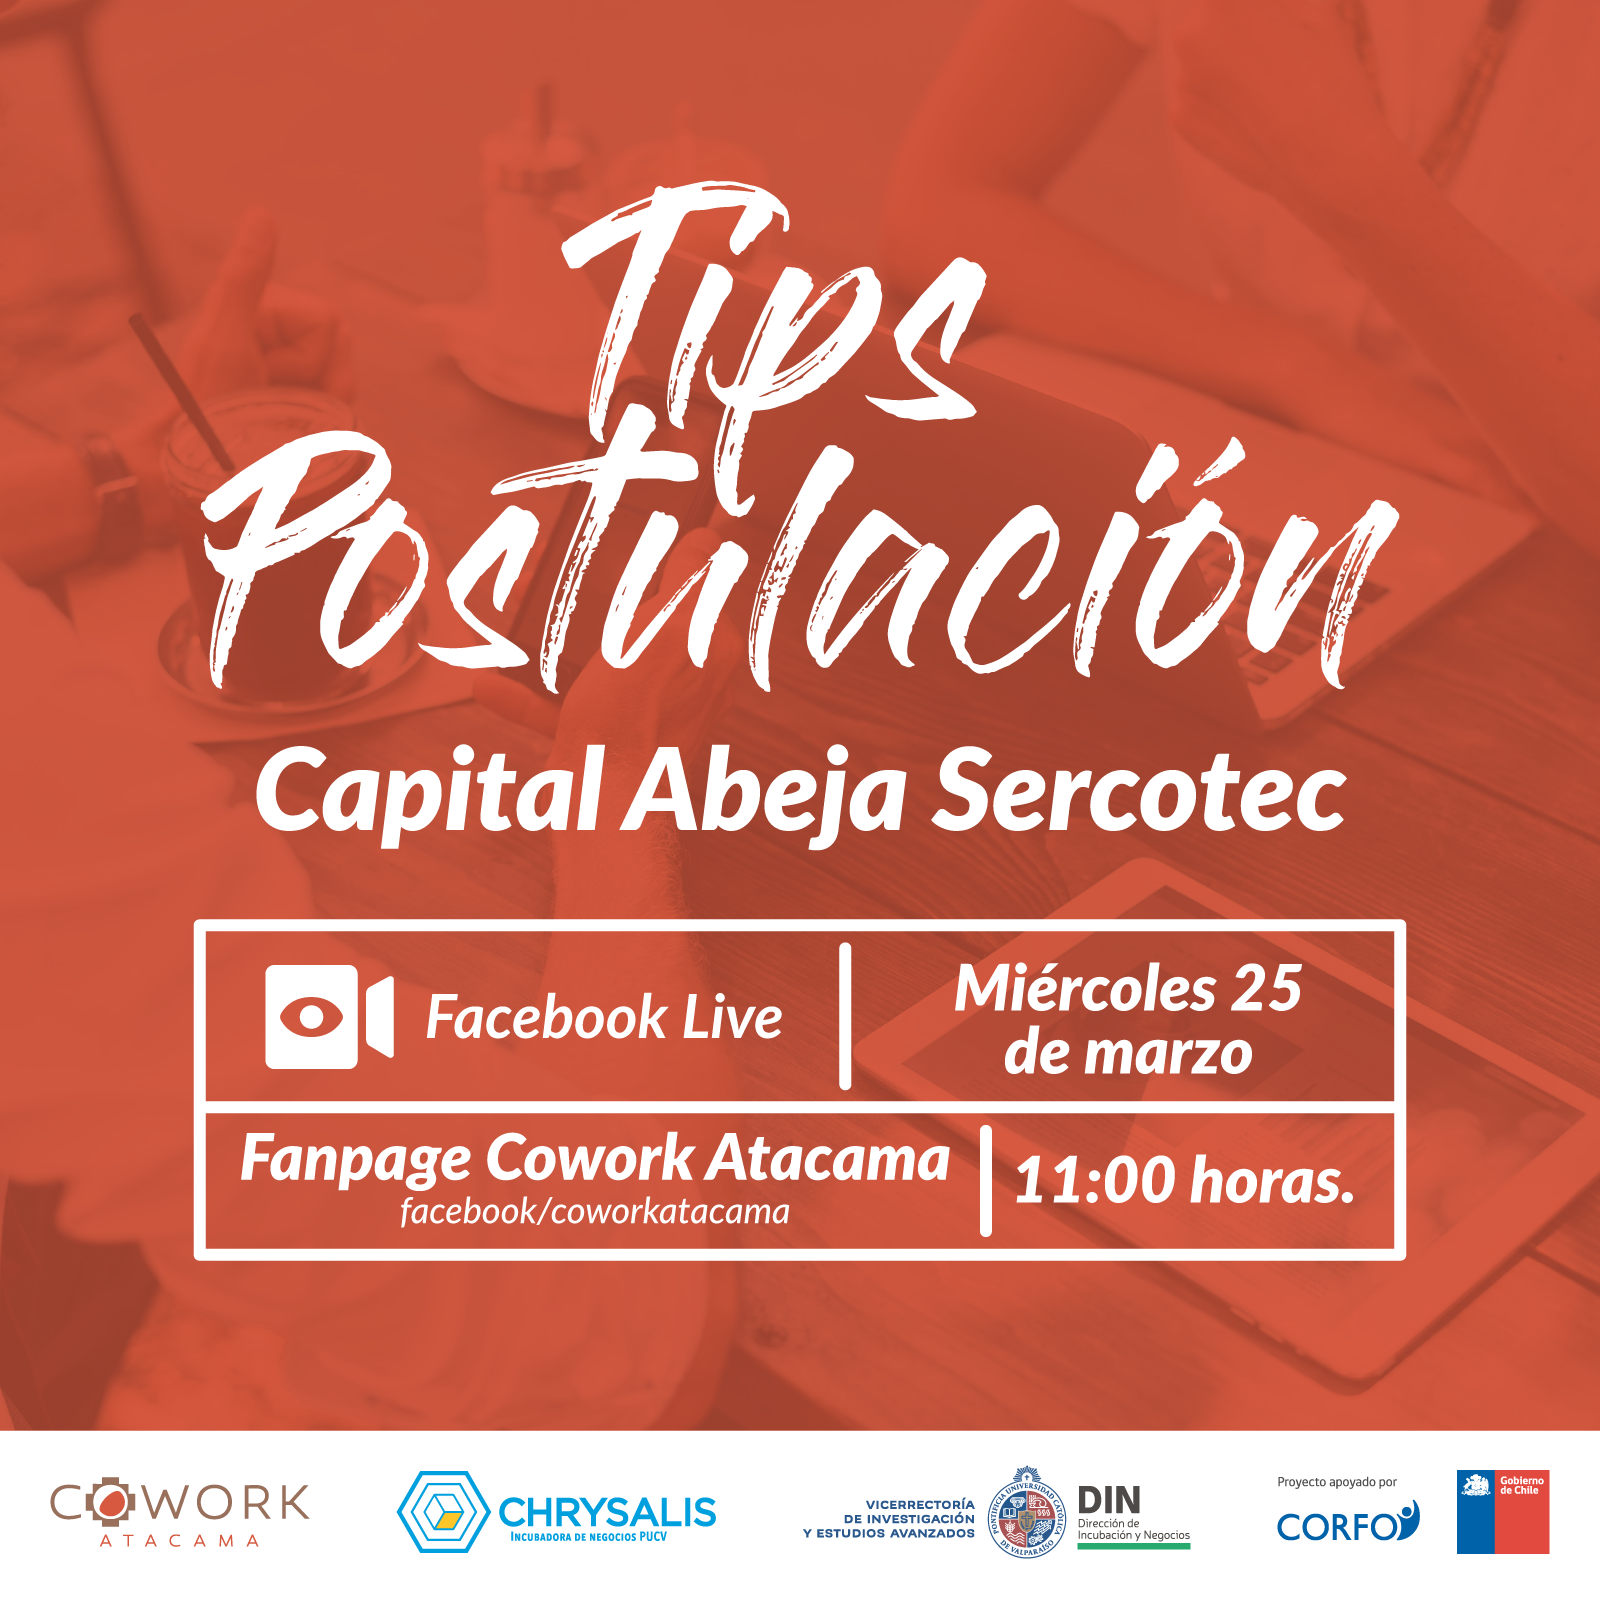 Webinar: Tips Postulación Capital Abeja